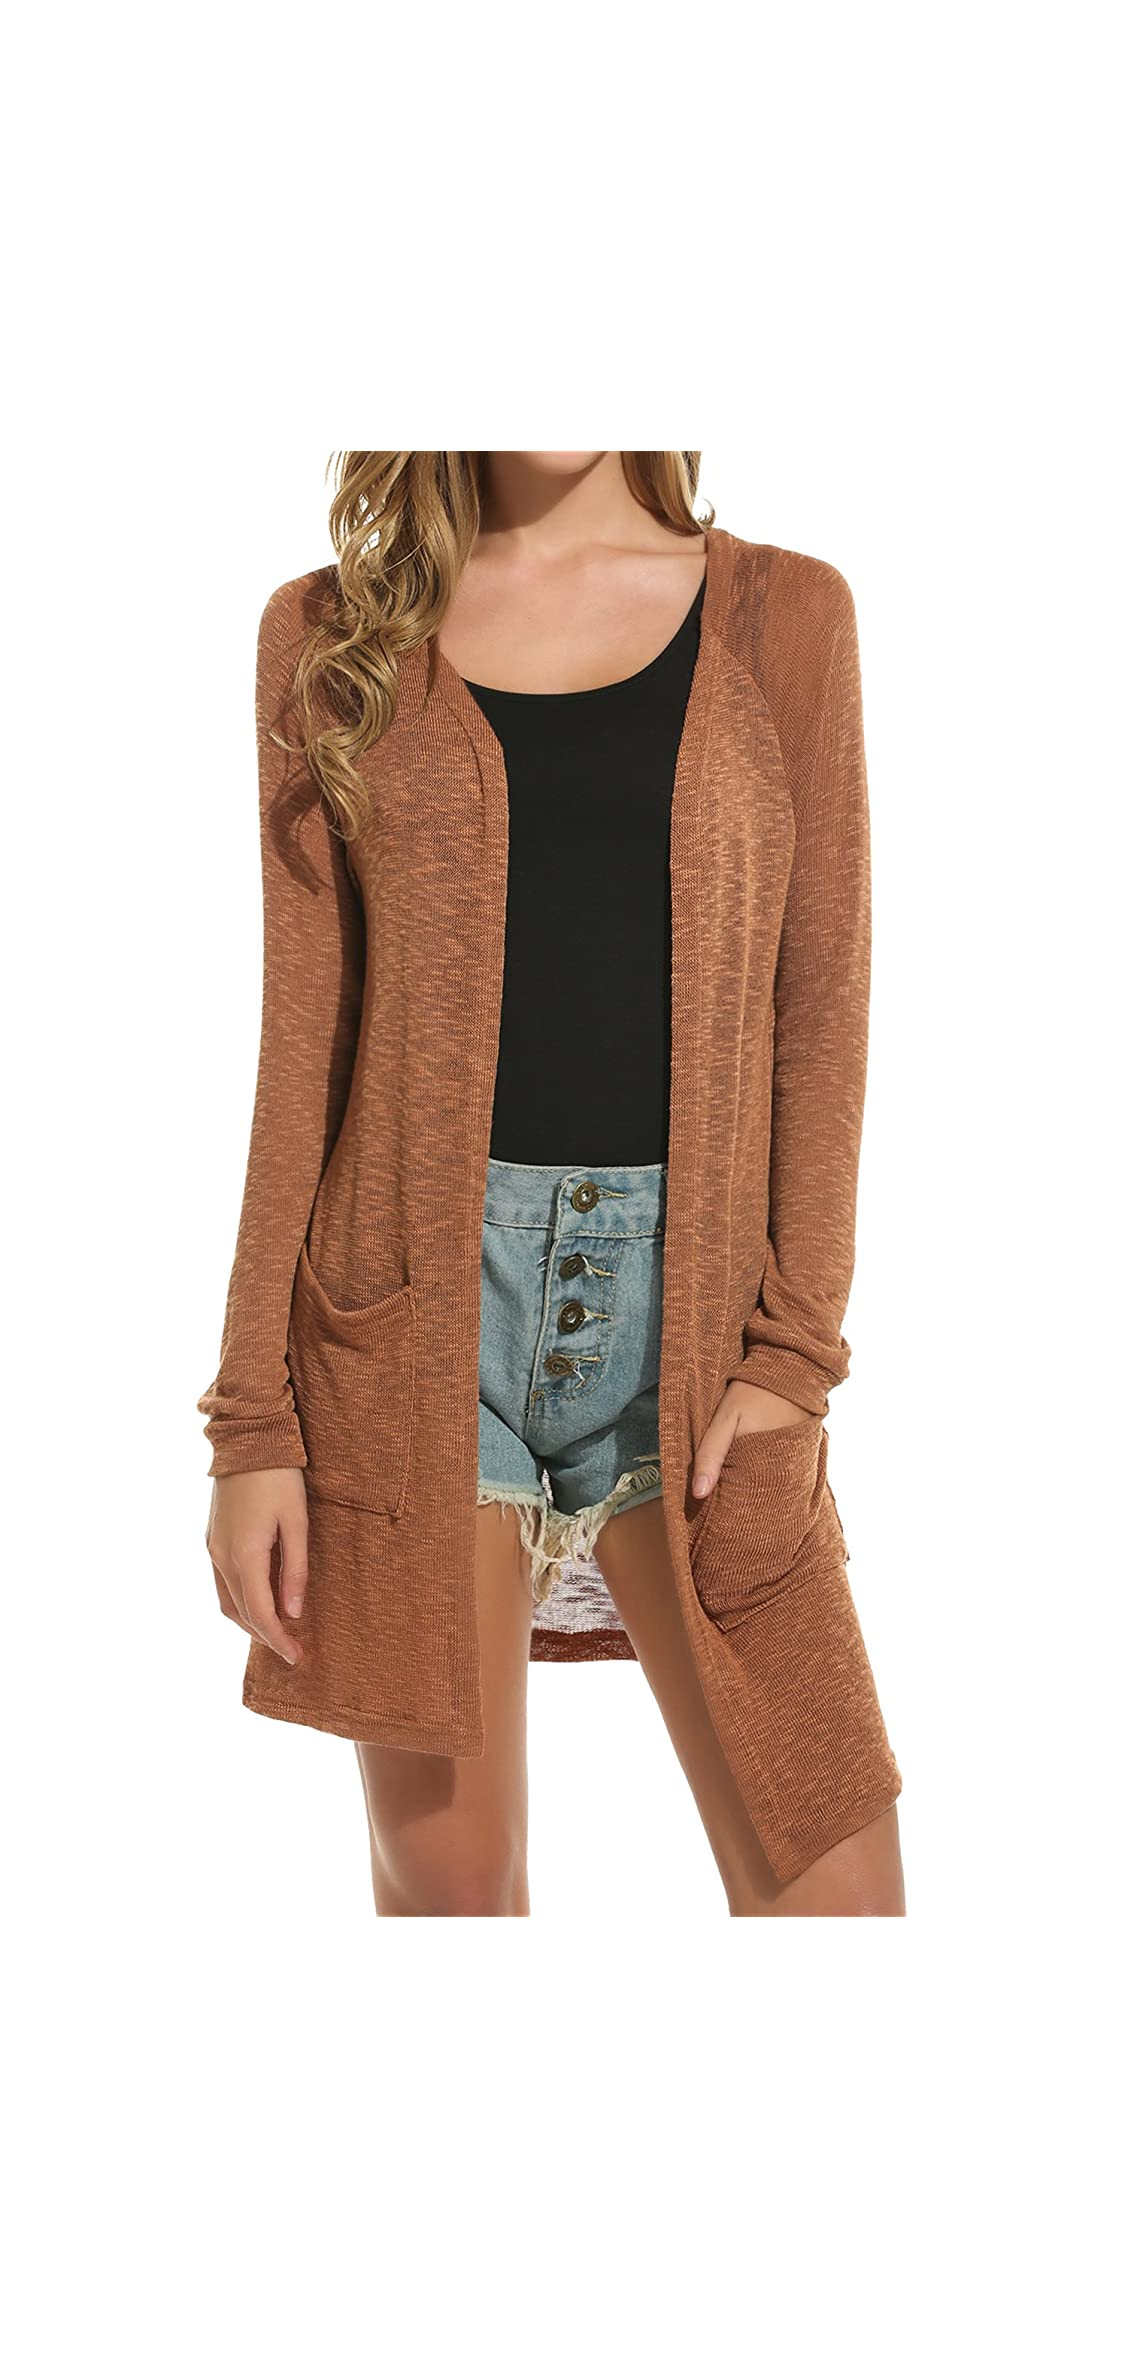 Womens Cardigan Sweater, Loose Casual Open Front With